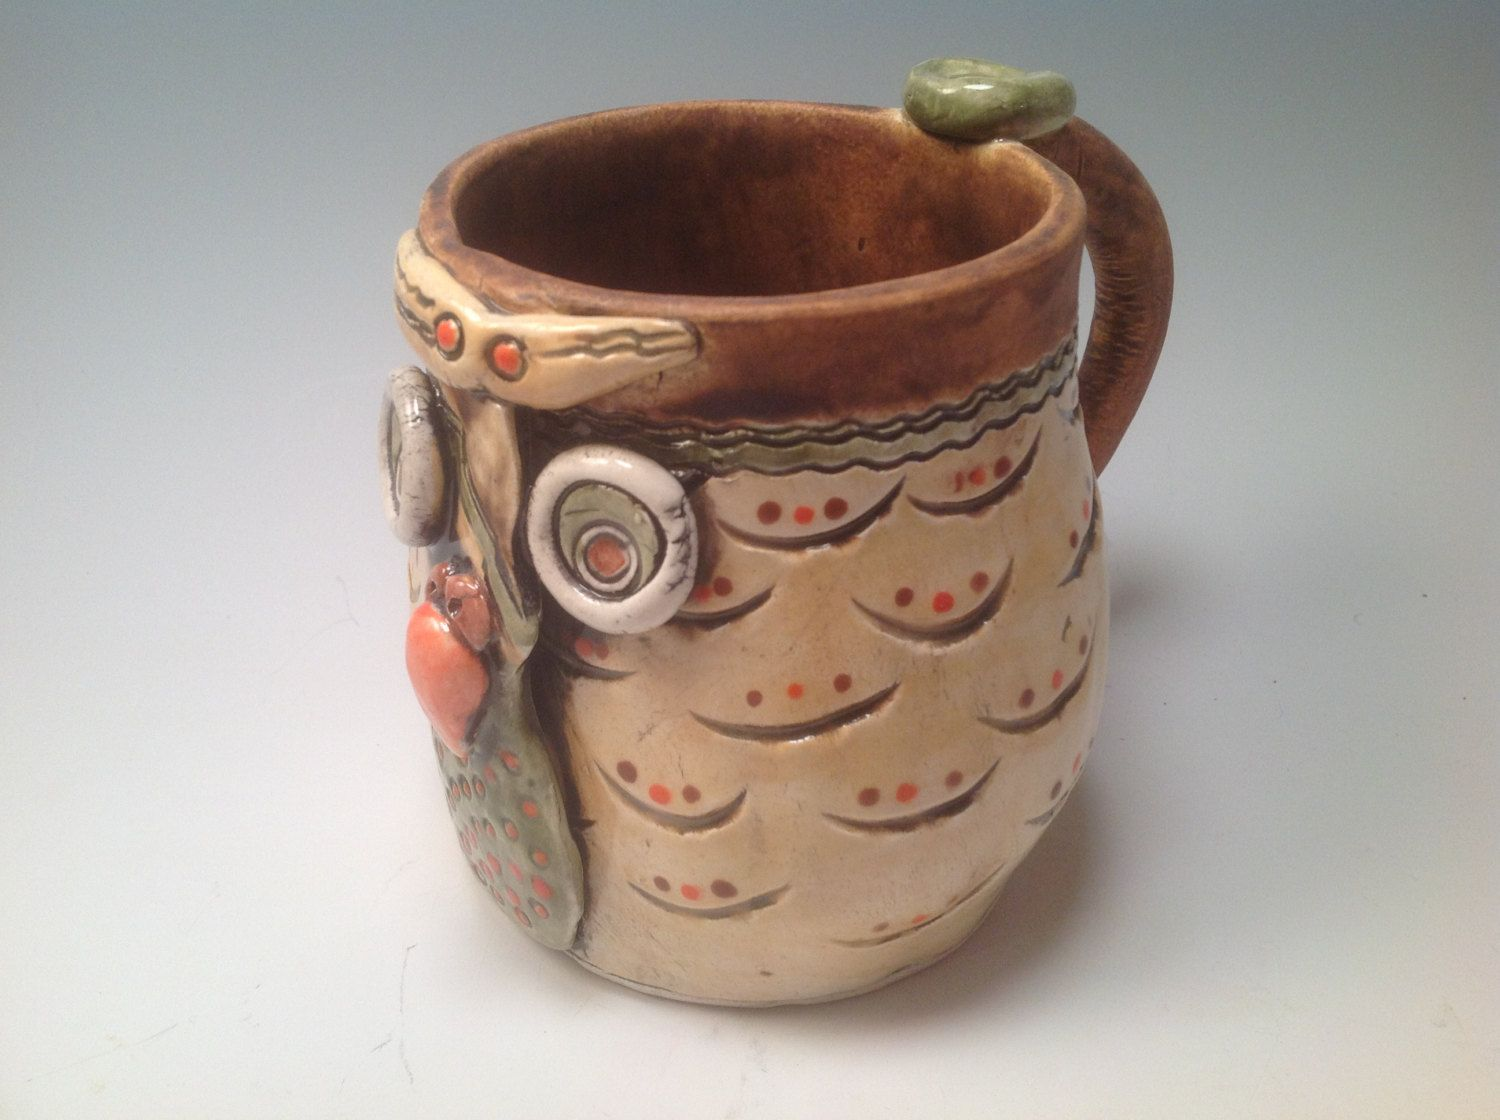 Owl Ceramic Mug Coffee Mug Owl Mug Owls Large Mug Handmade Mug Coffee Cup